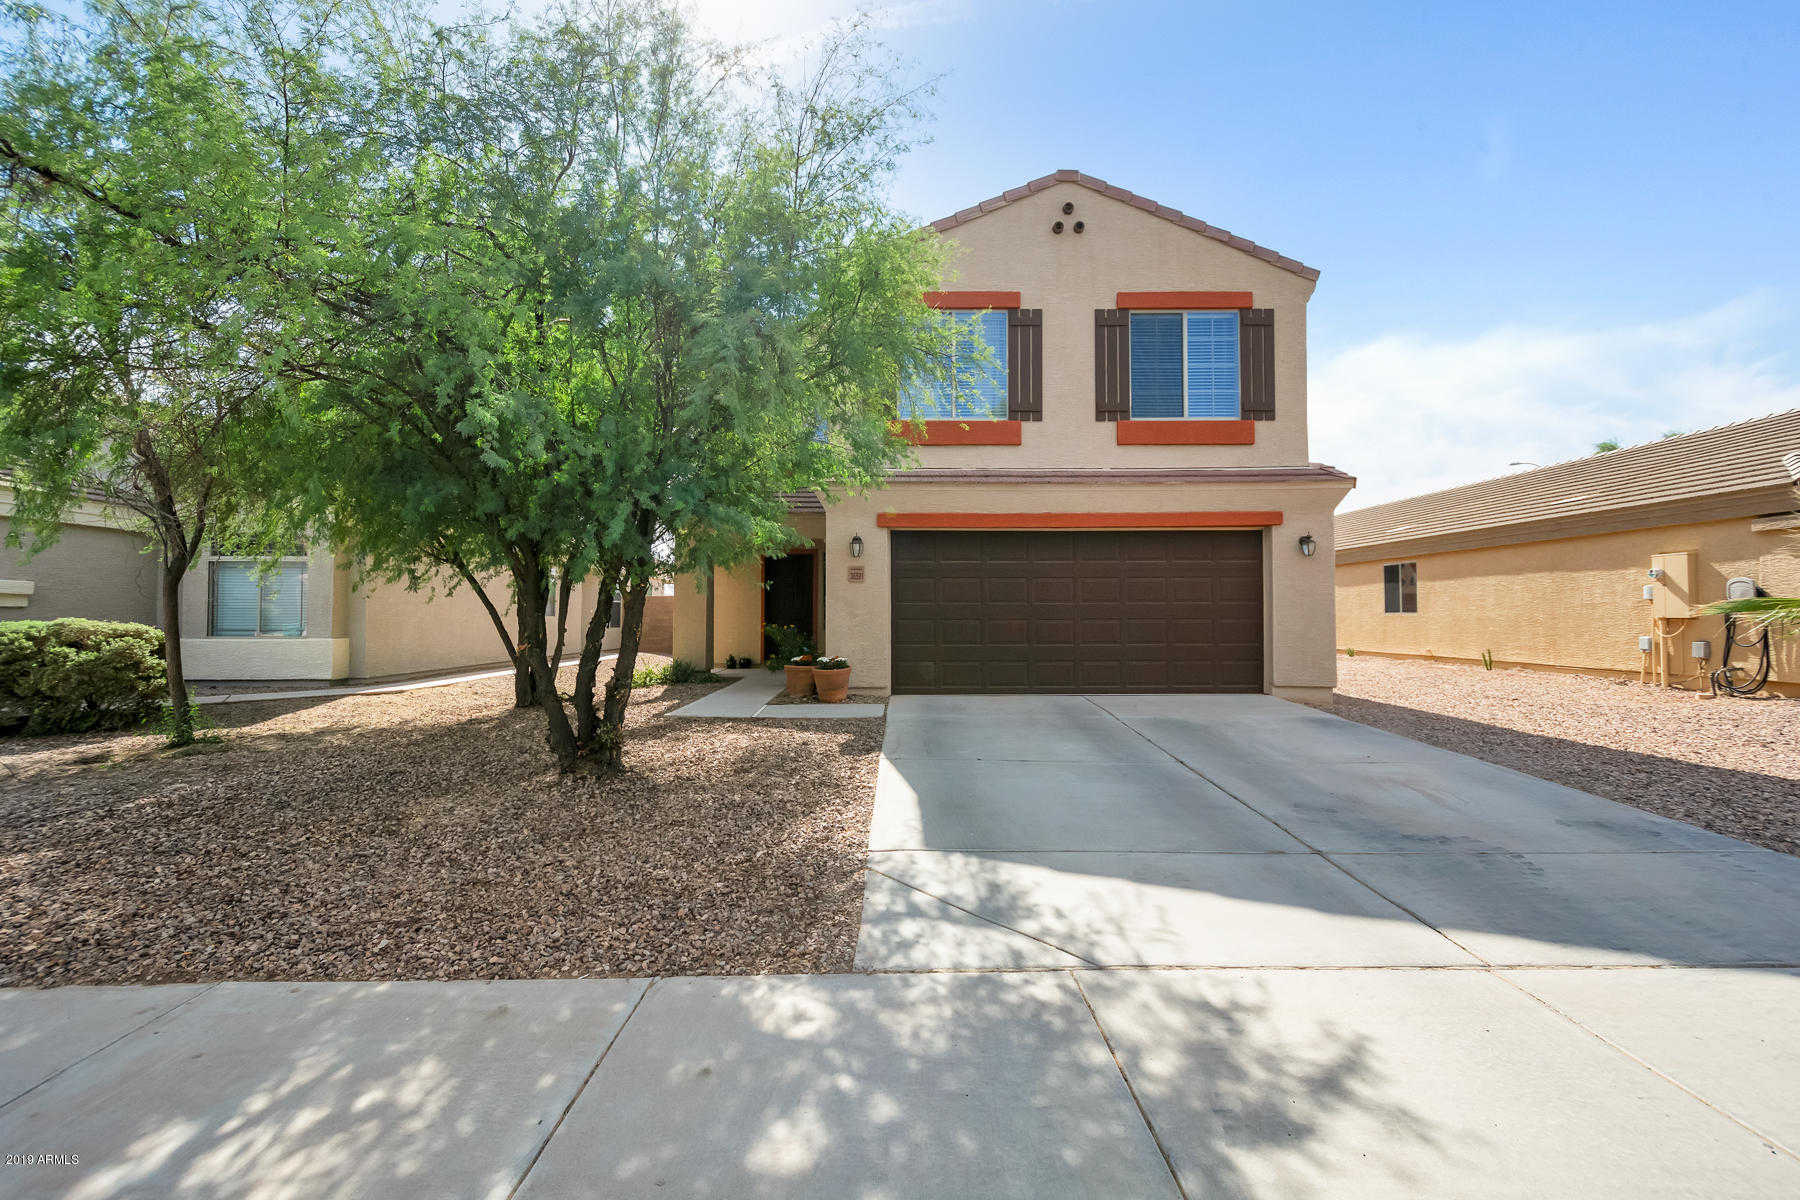 $200,000 - 4Br/3Ba - Home for Sale in Tortosa Nw Parcel 13, Maricopa